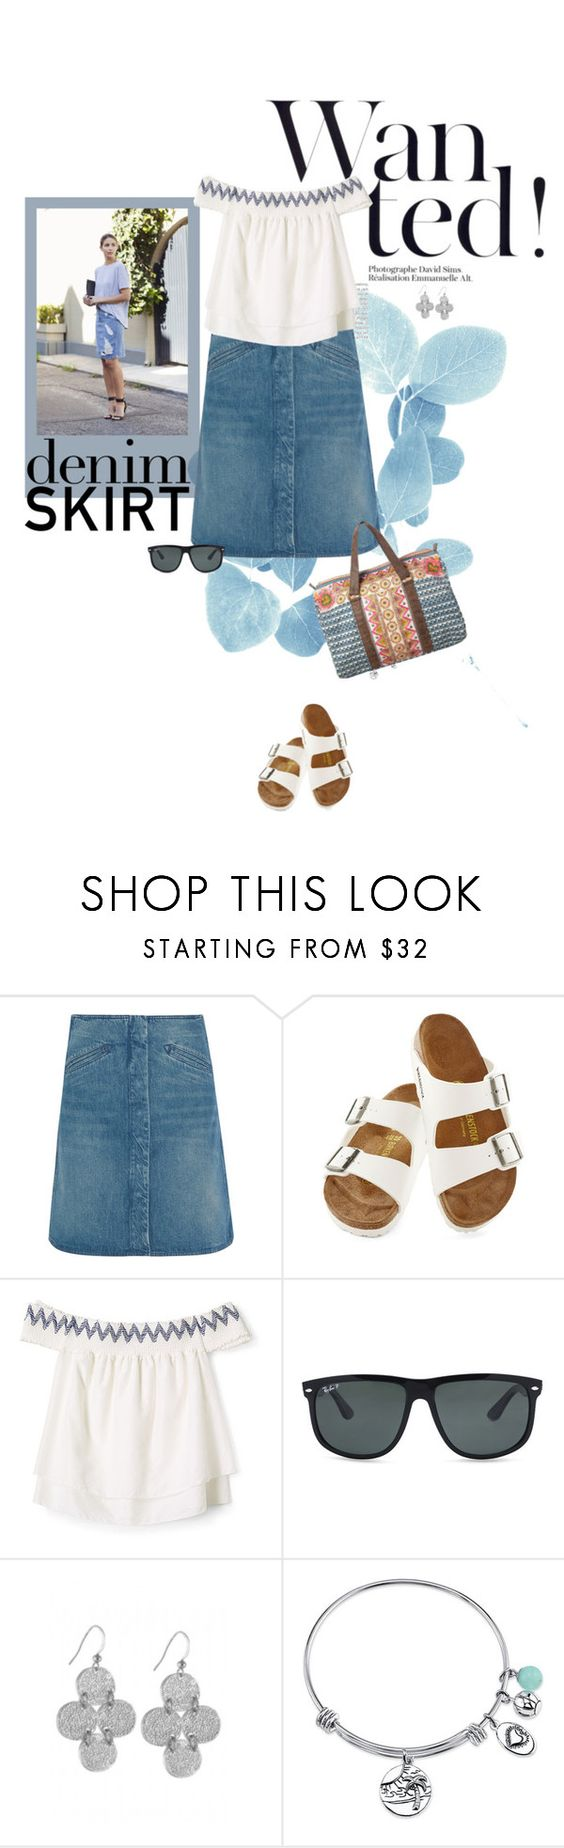 """""""Cute Denim Skirt"""" by likepolyfashion ❤ liked on Polyvore featuring MiH Jeans, Birkenstock, Rebecca Minkoff, Ray-Ban, Karen Kane, Footnotes Too and denimskirt"""